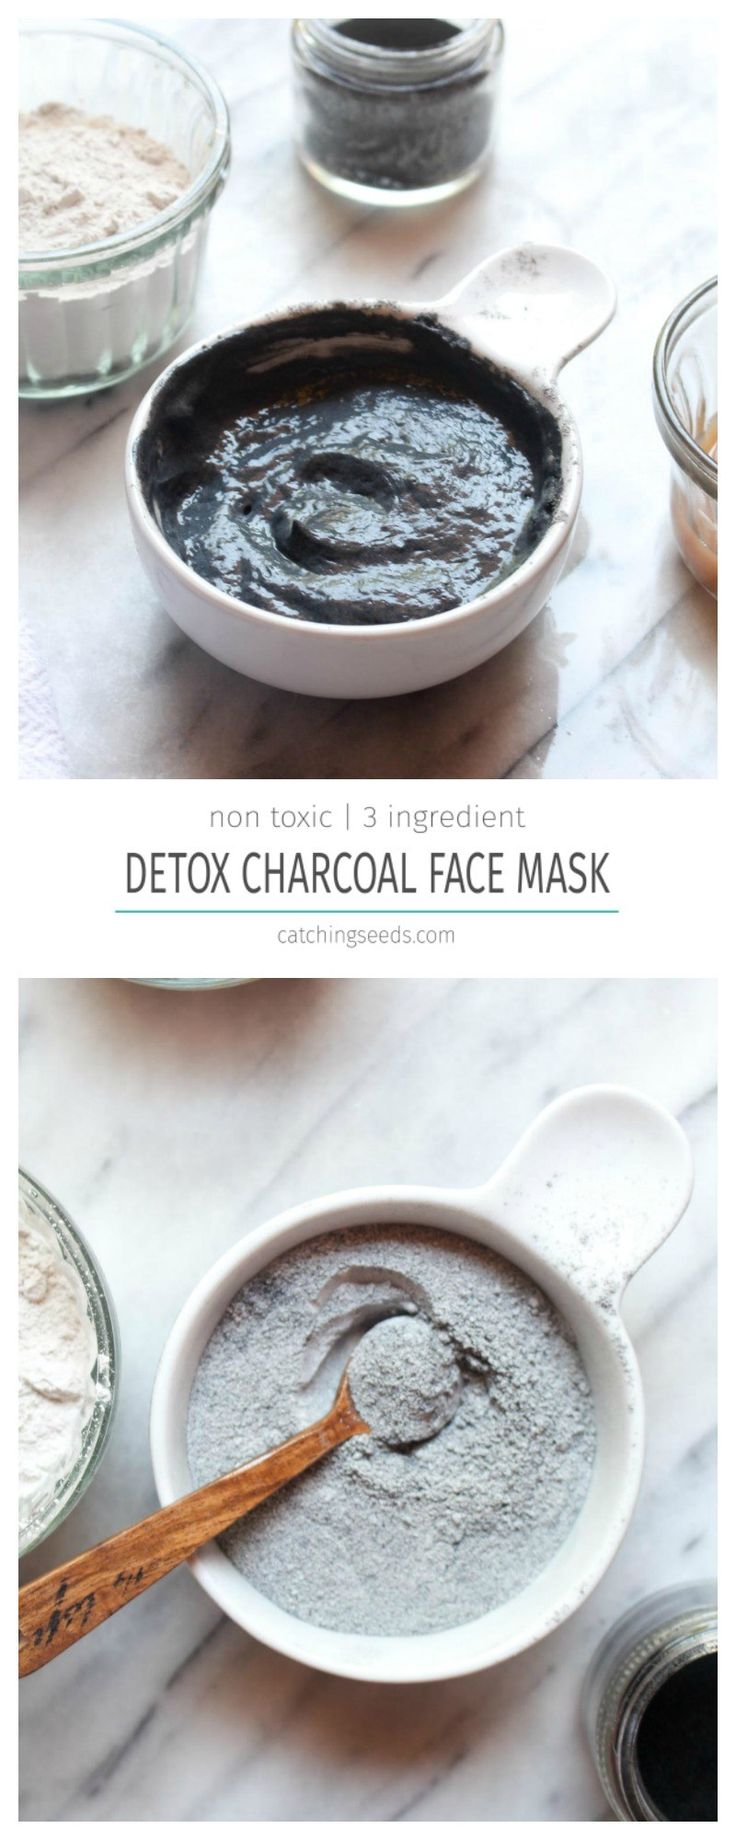 This easyDIY Detox Charcoal Face Mask offers all the benefits of the fancy store bought masks, at a fraction of the cost! Charcoal and clay will pull dirt and oil from your pores and leave you with soft clean skin and visibly smaller pores. | CatchngSeeds.com